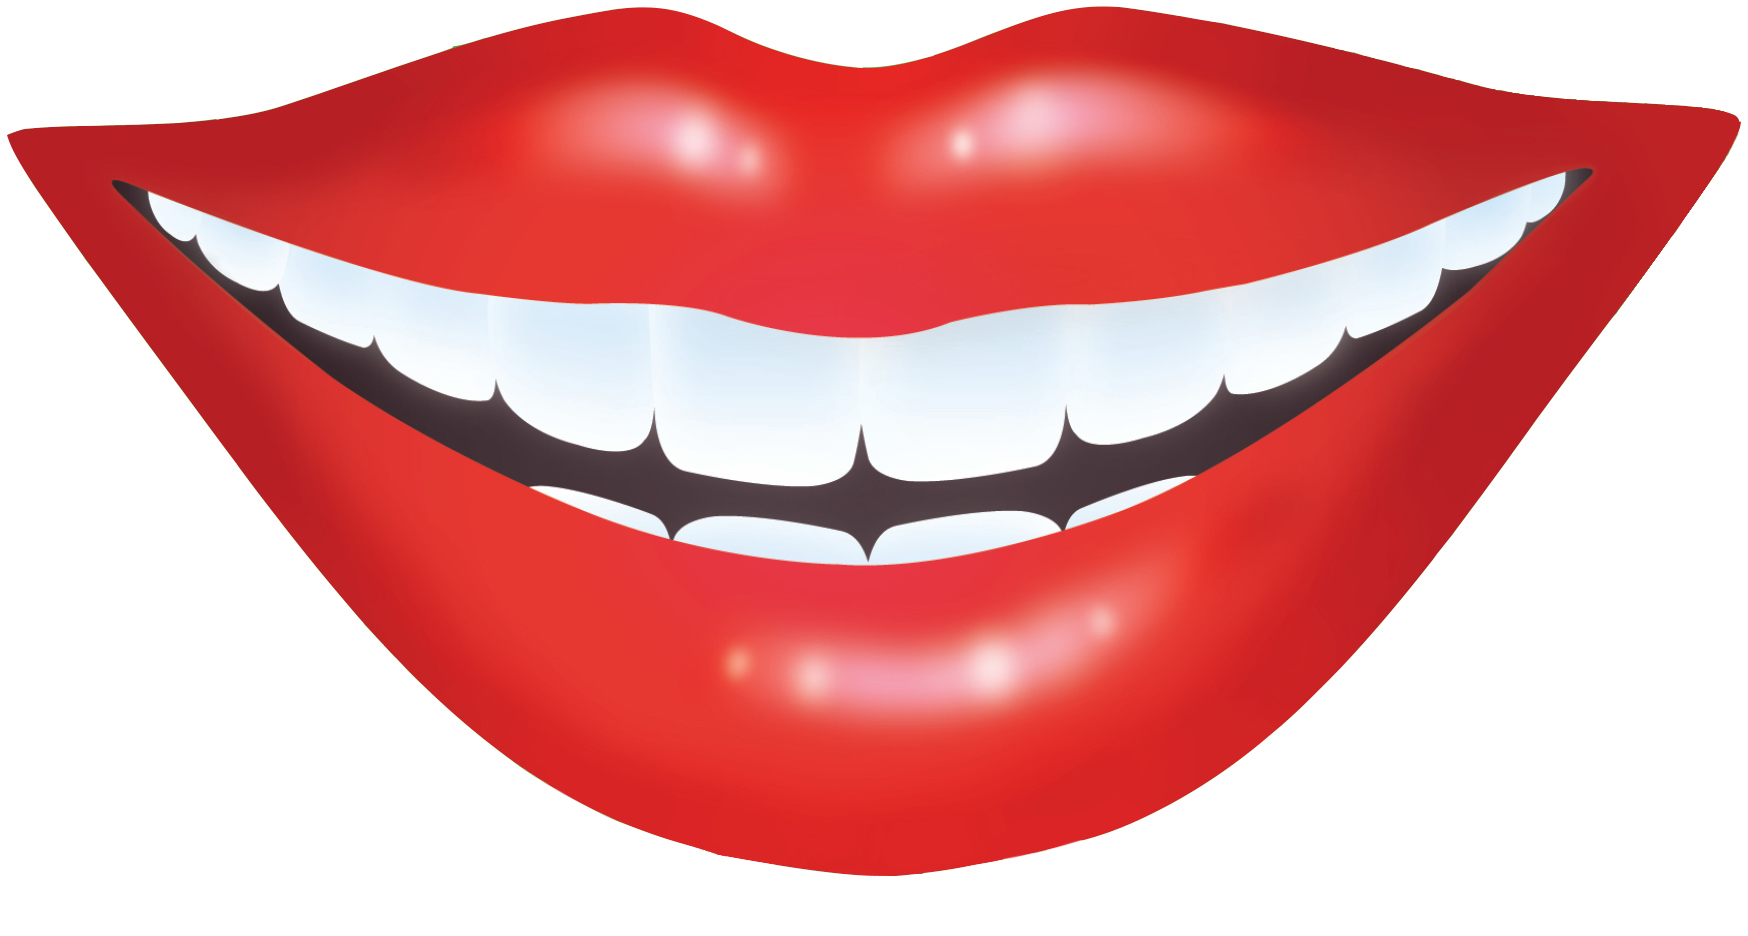 Images For > Cartoon Mouth Clip Art - Cliparts.co